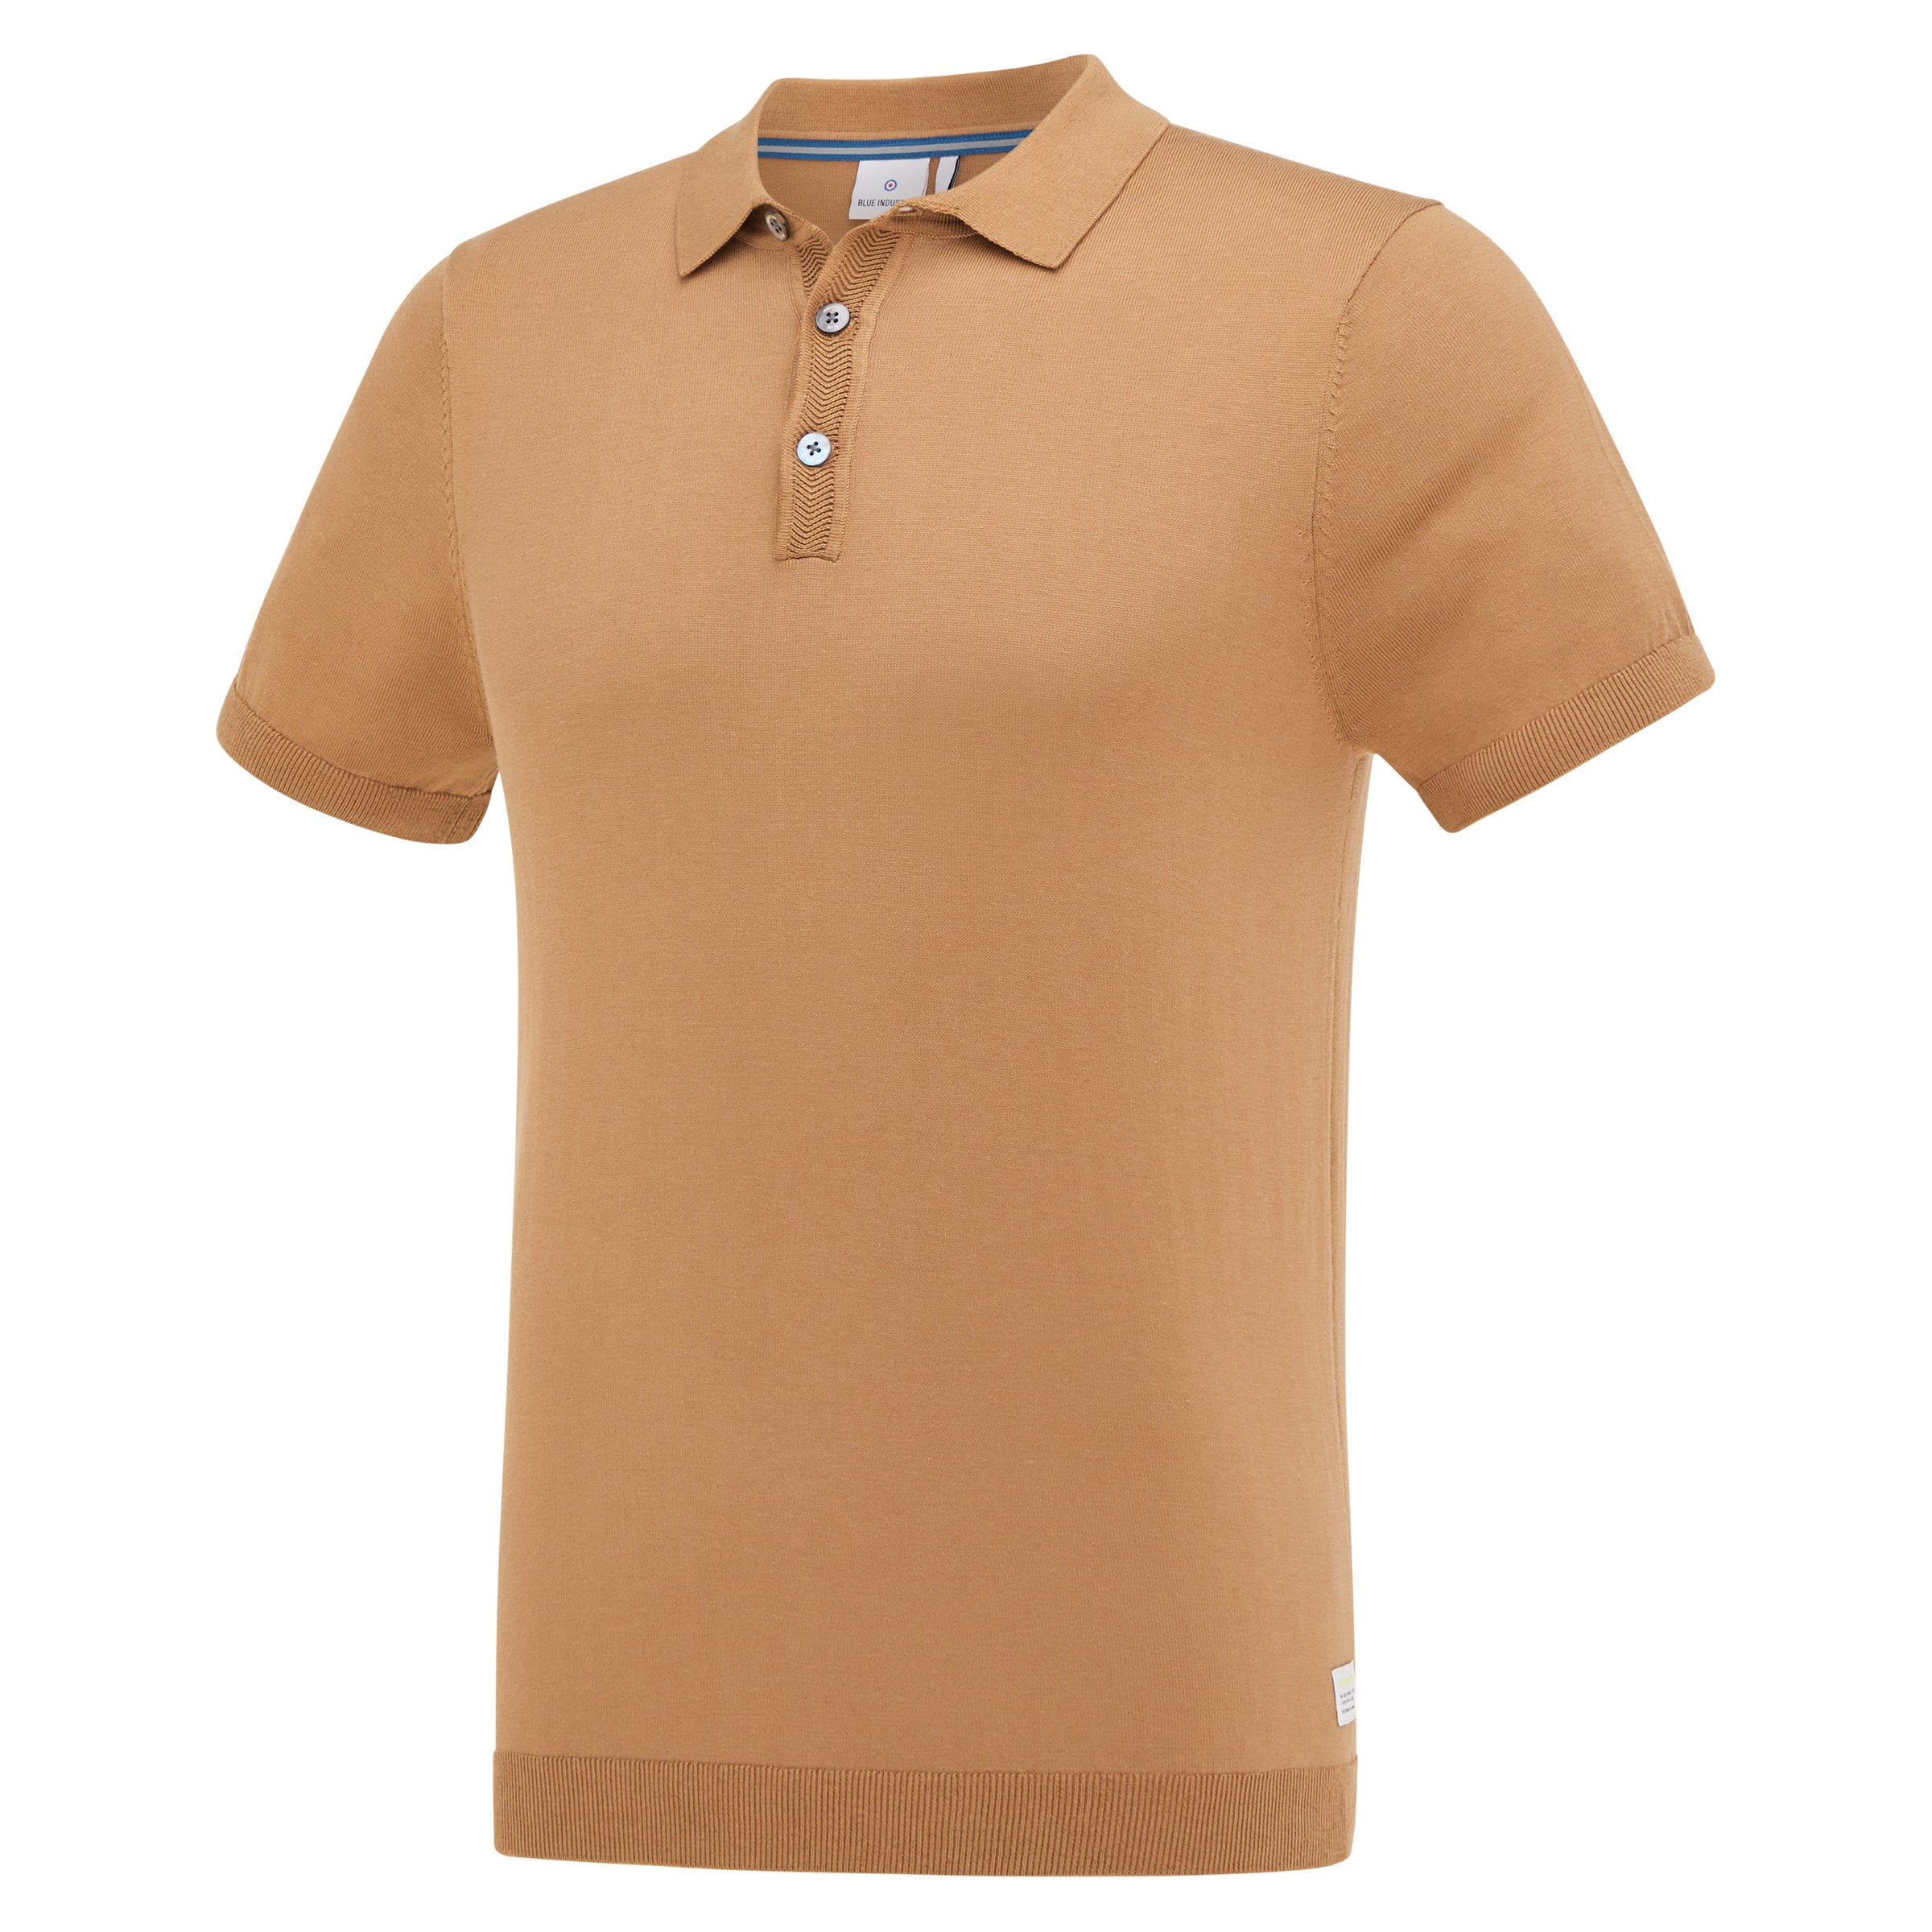 Camel Cotton Knit Polo